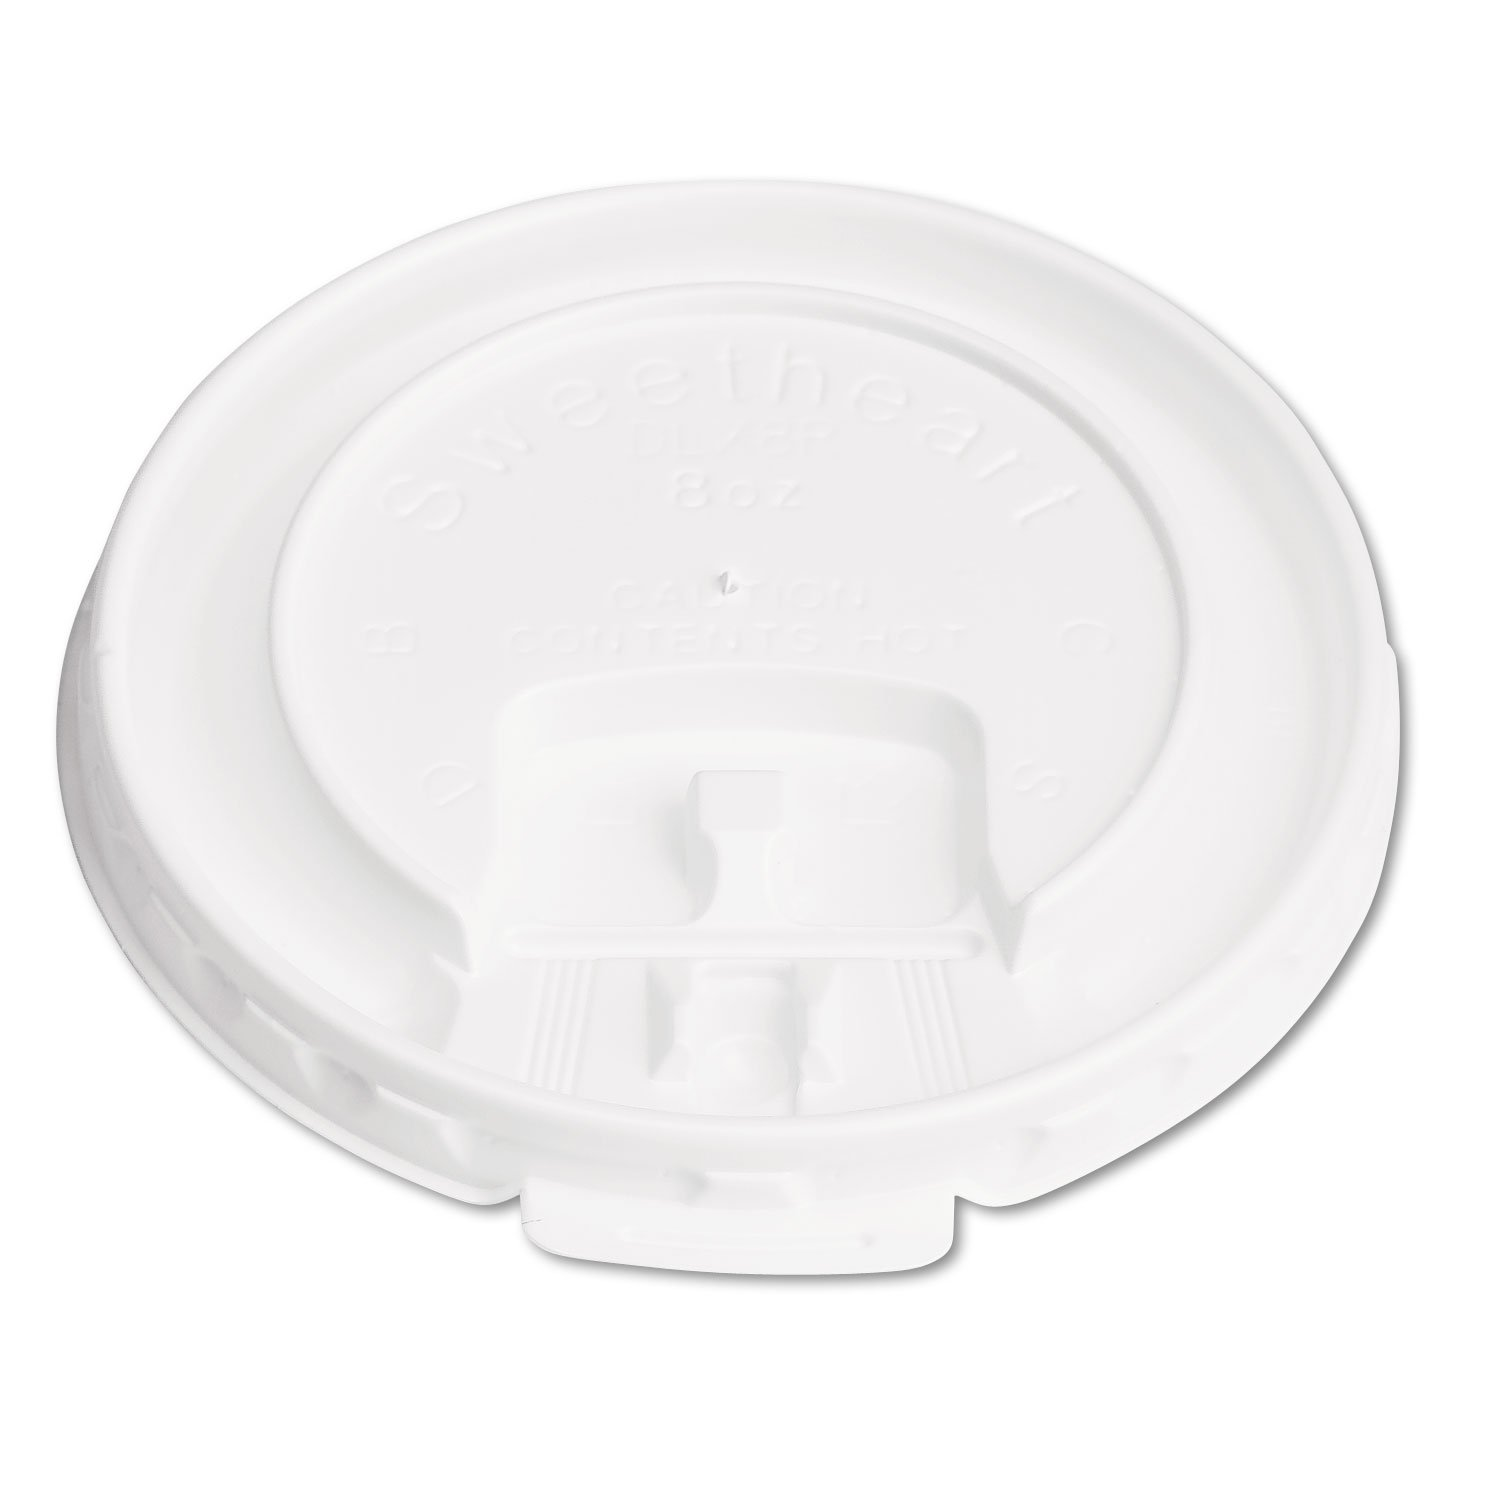 SOLO Cup Company Travel Cups, Lid, for SLOX8J, White, 2,000/carton (DLX8R)